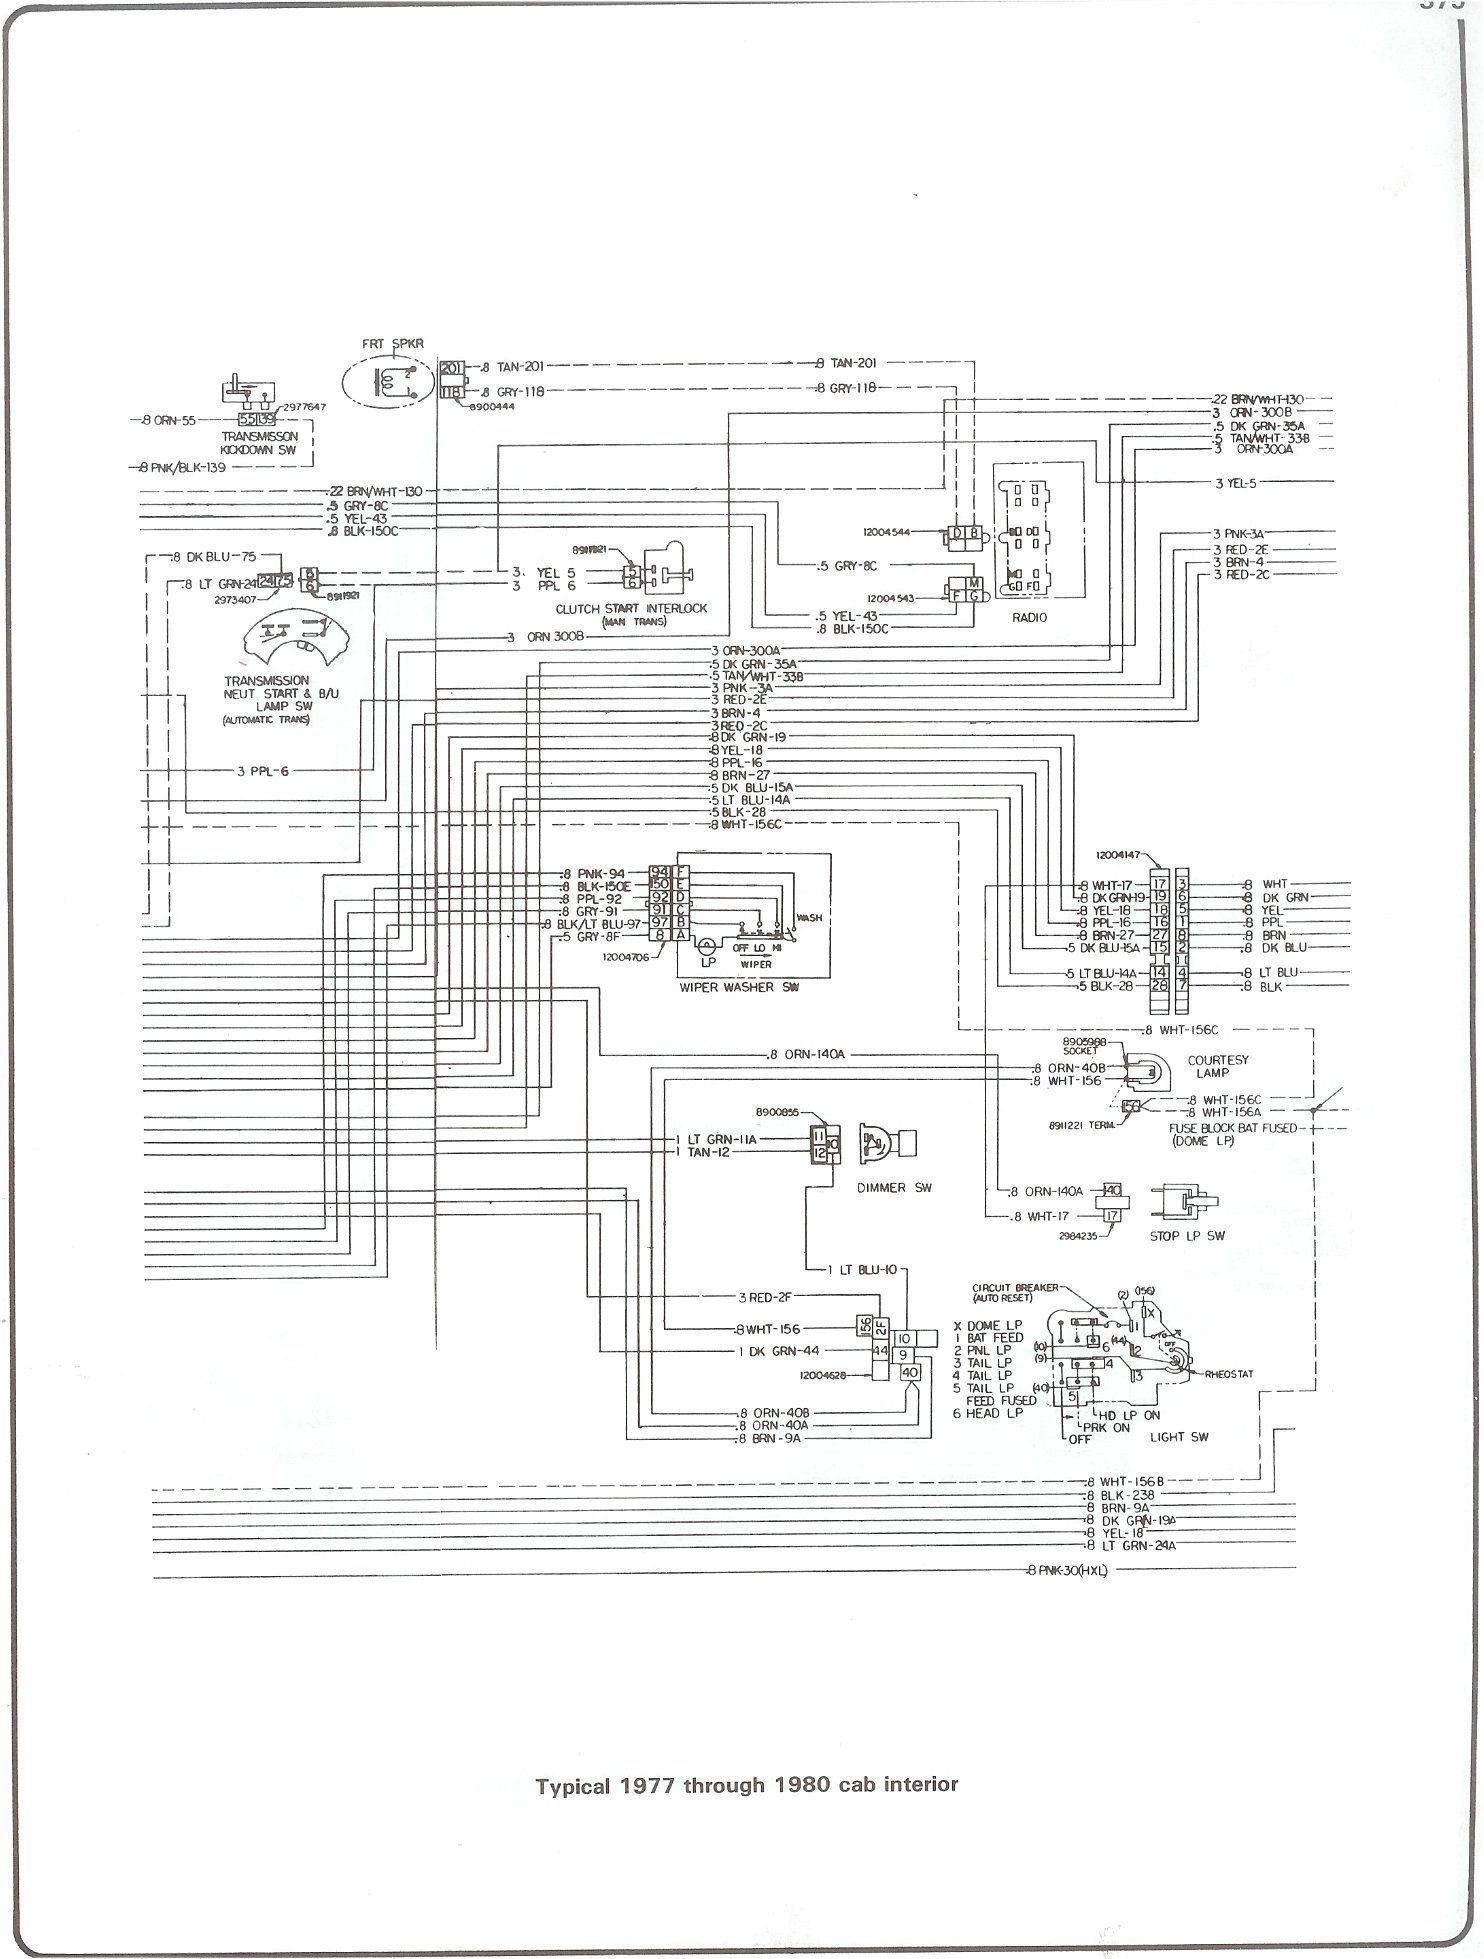 89 Chevy Engine Wiring Harness Schematic List Of Circuit 1987 Camaro Alternator Diagram 1978 C10 Rh Theodocle Fion Com